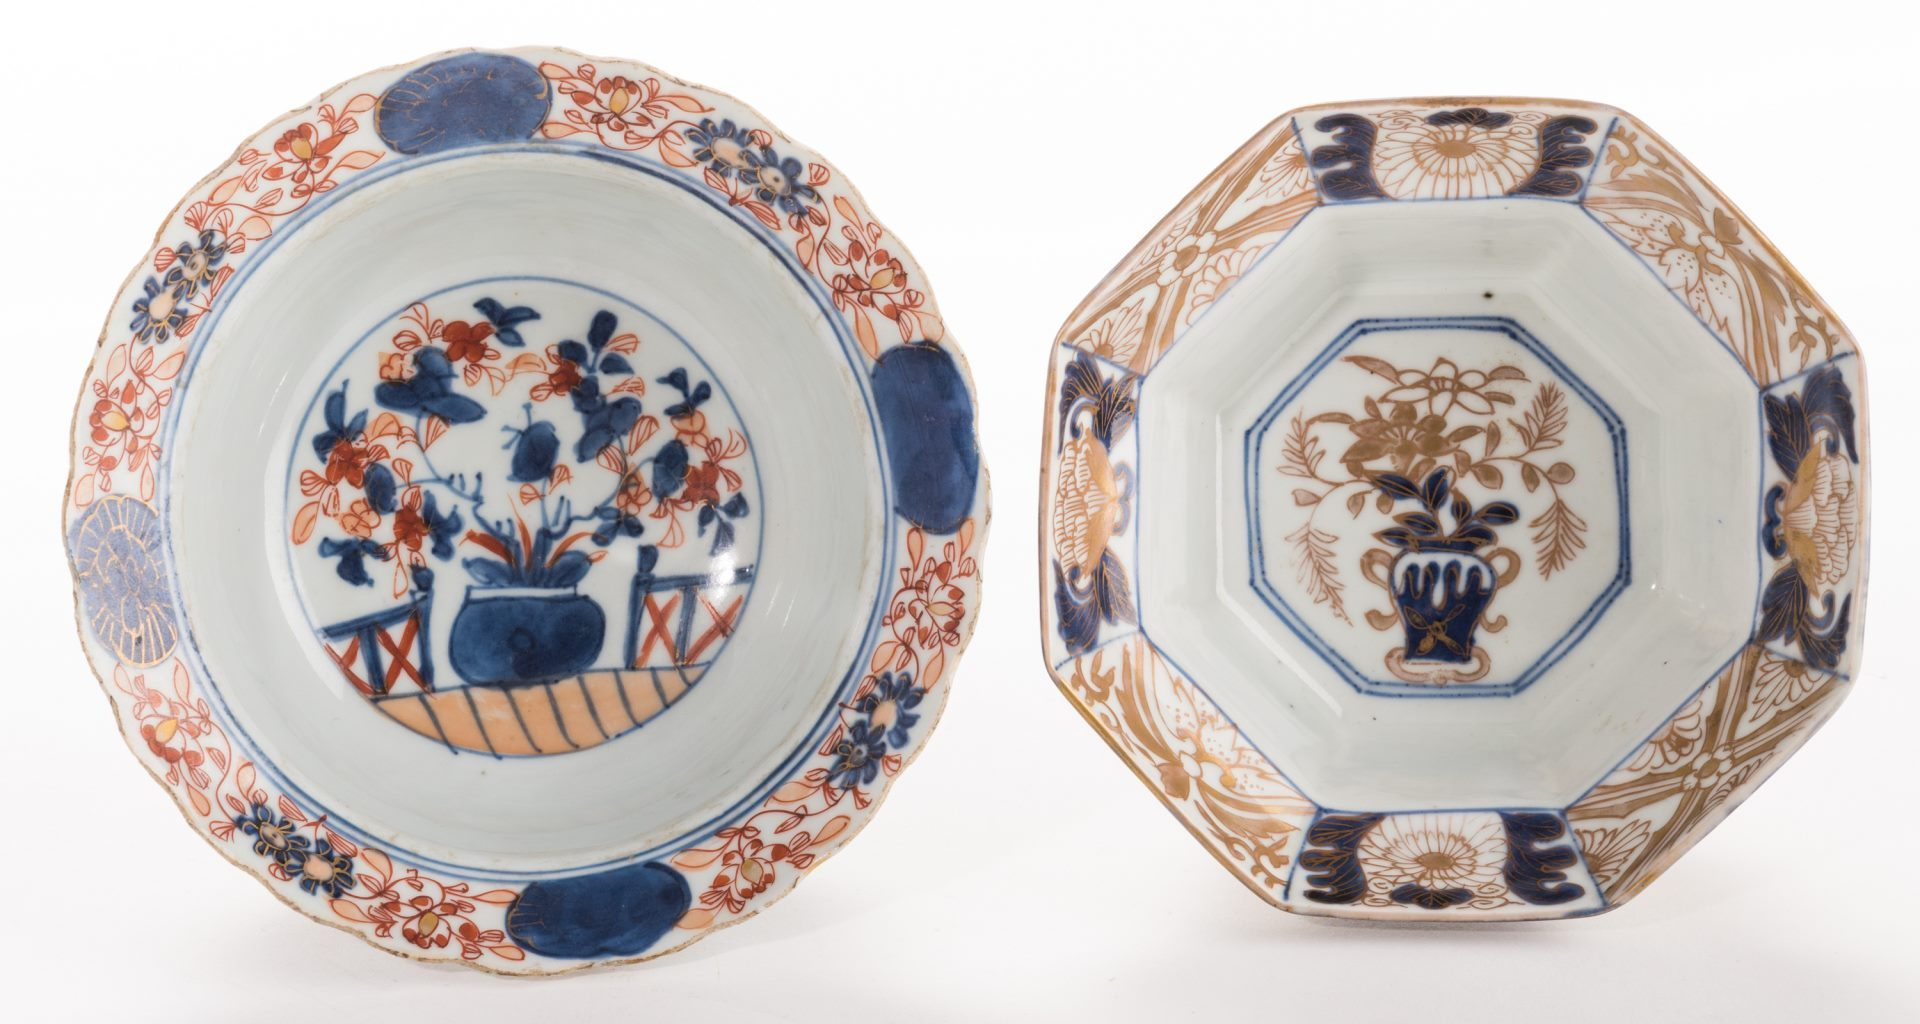 Lot 183: Two Small Asian Porcelain Bowls, 18th c.